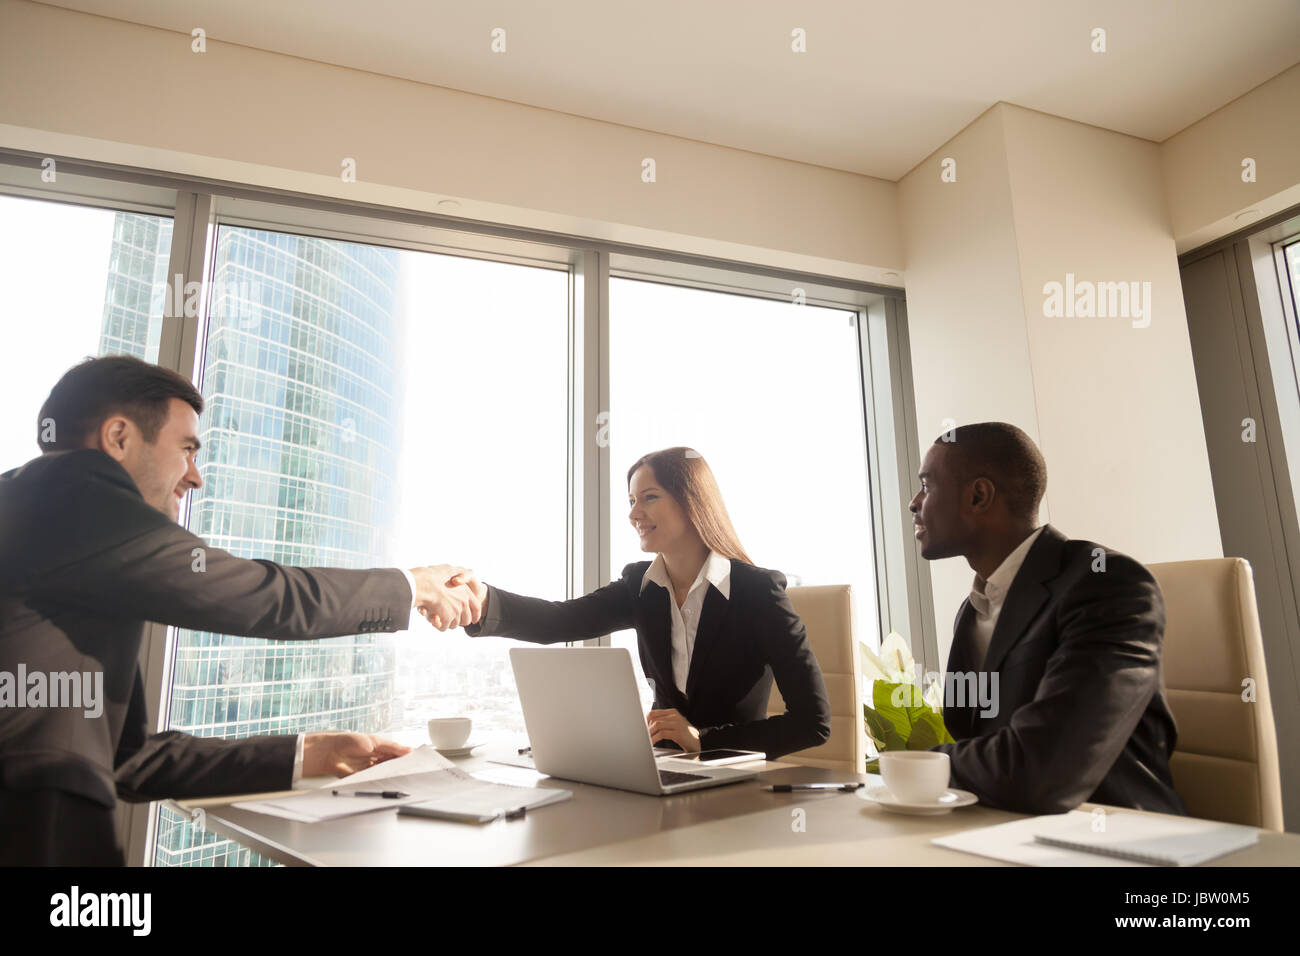 Cheerful female and male caucasian partners handshaking over office desk, multi-ethnic meeting with afro american - Stock Image